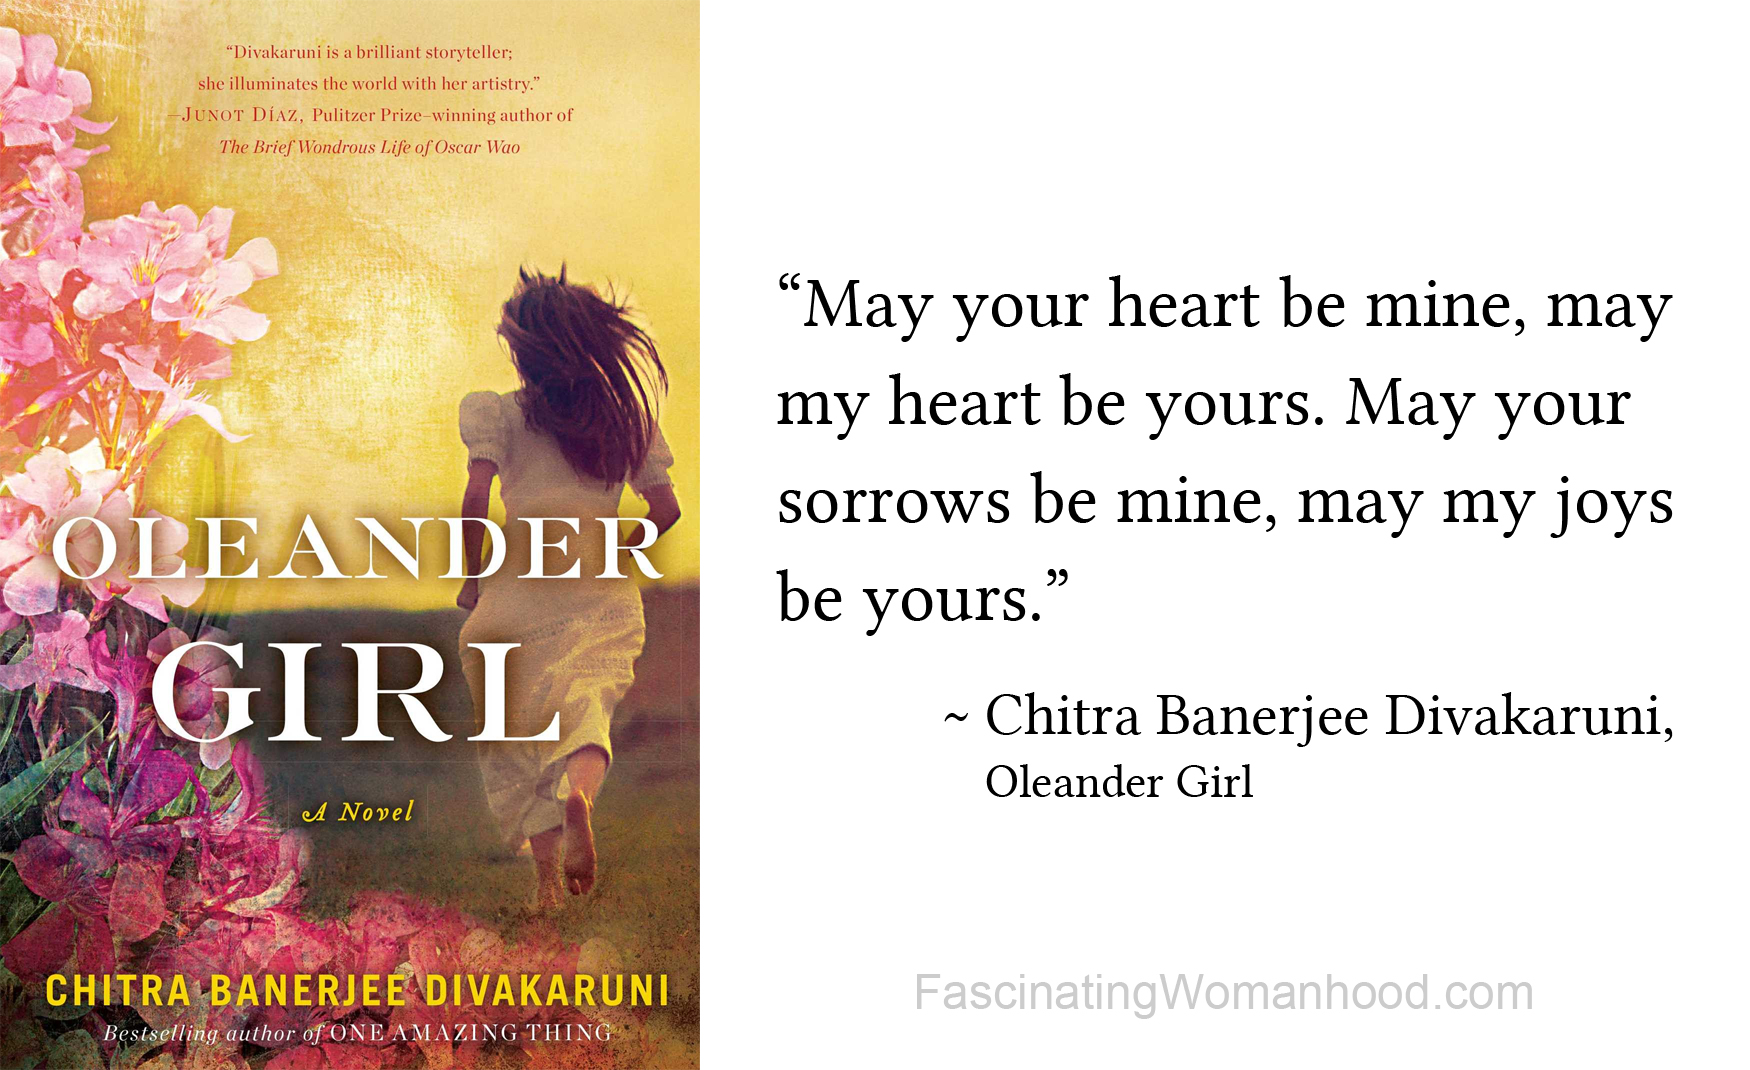 A Quote by Chitra Banerjee Divakaruni.jpg